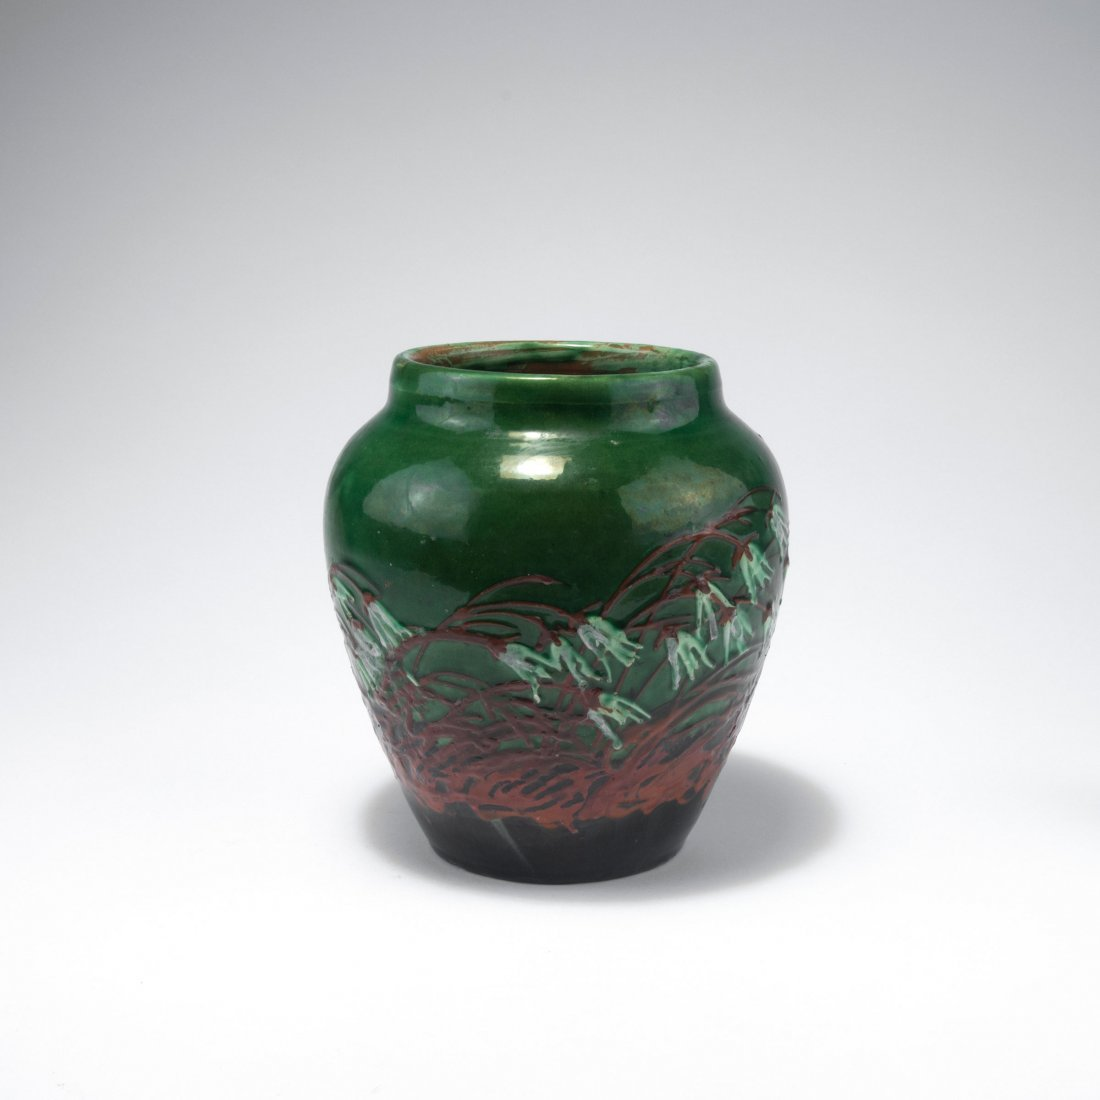 'Bellflowers' vase, c1897 - 2